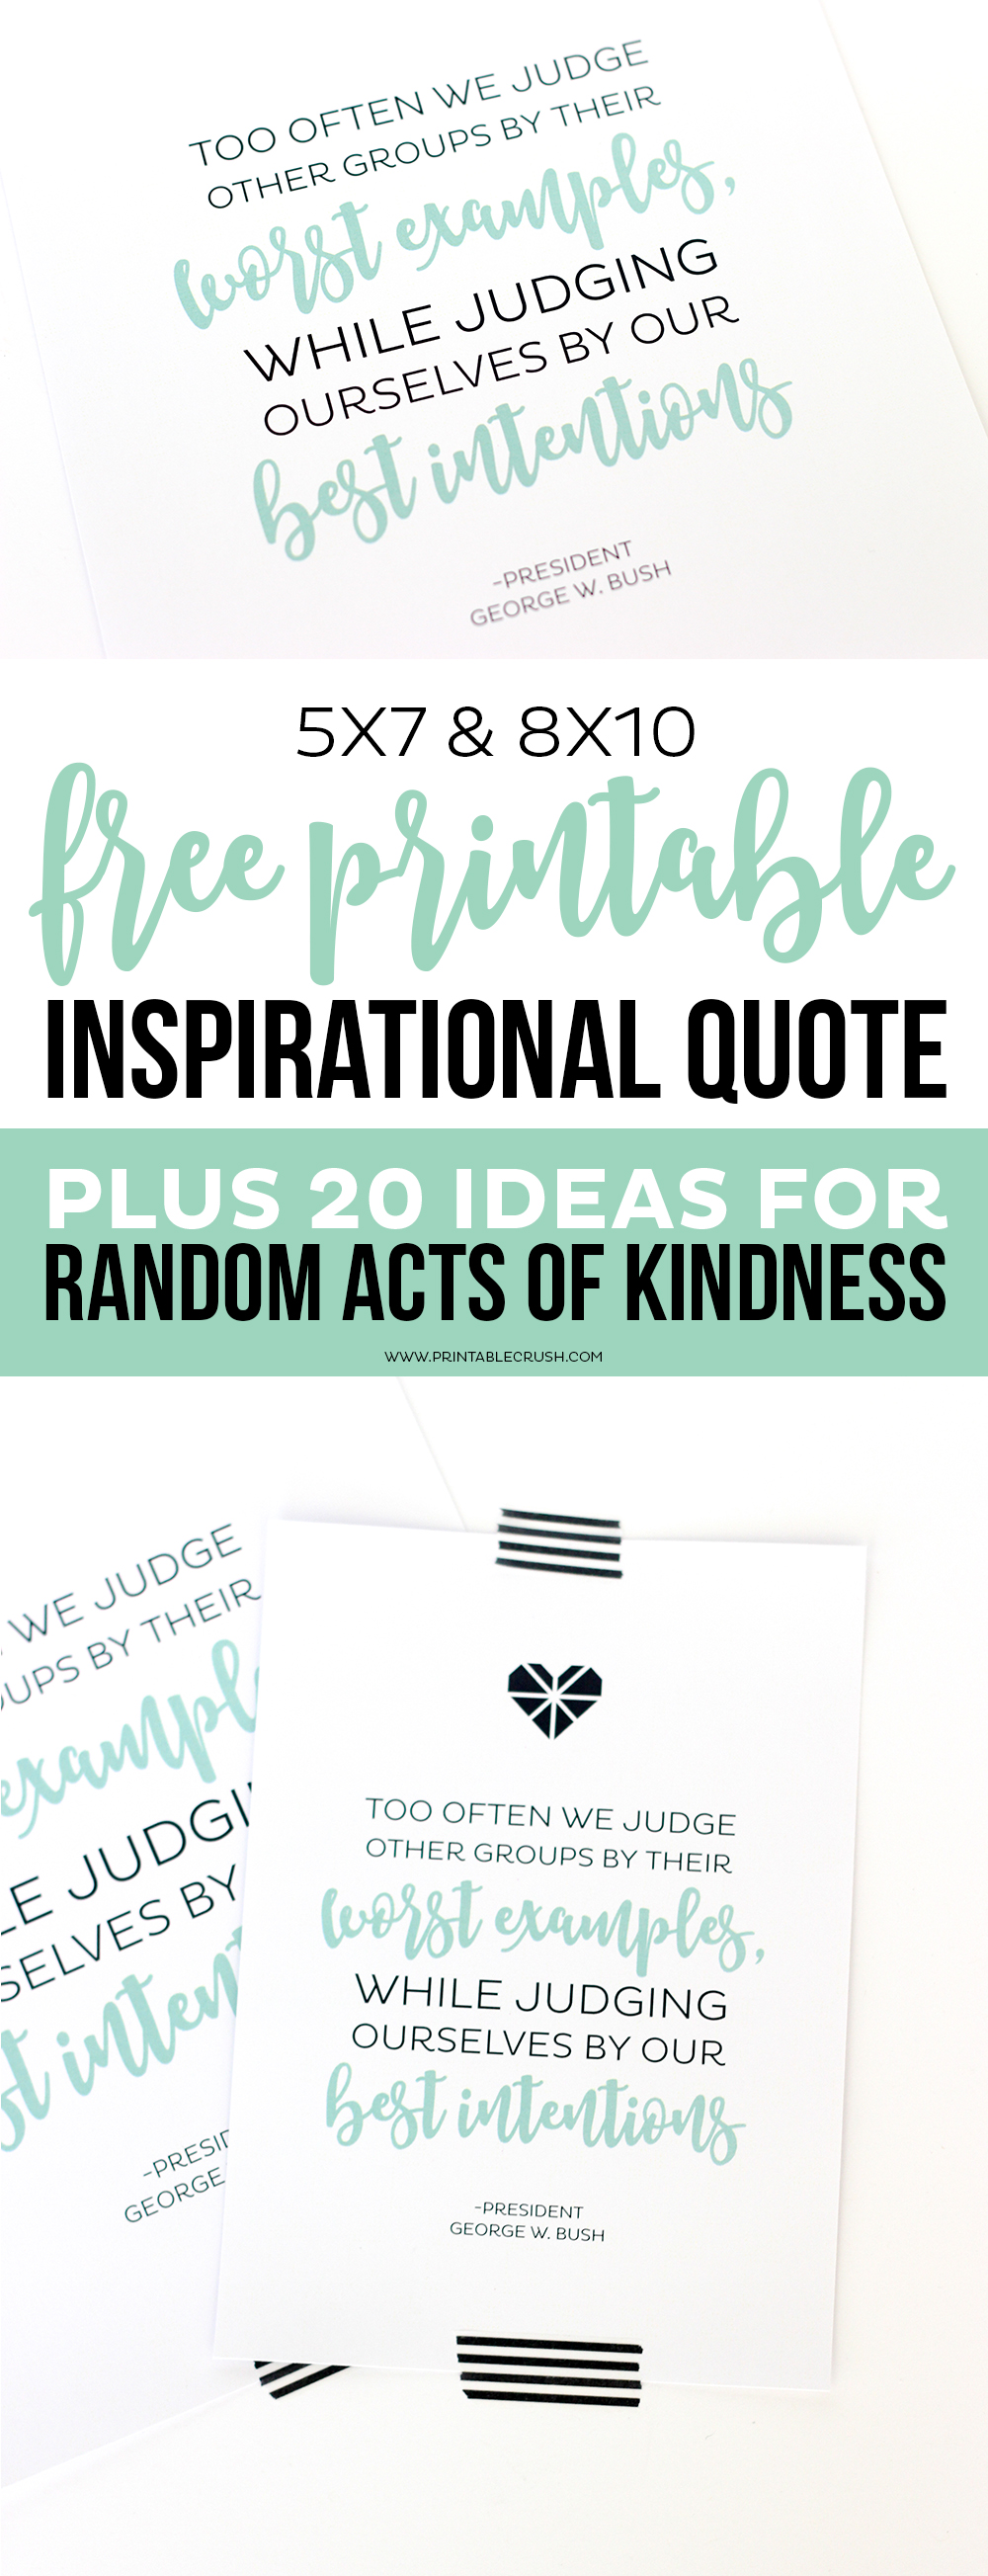 graphic about Printable Inspirational Quotes called No cost Printable Inspirational Estimate and Random Functions of